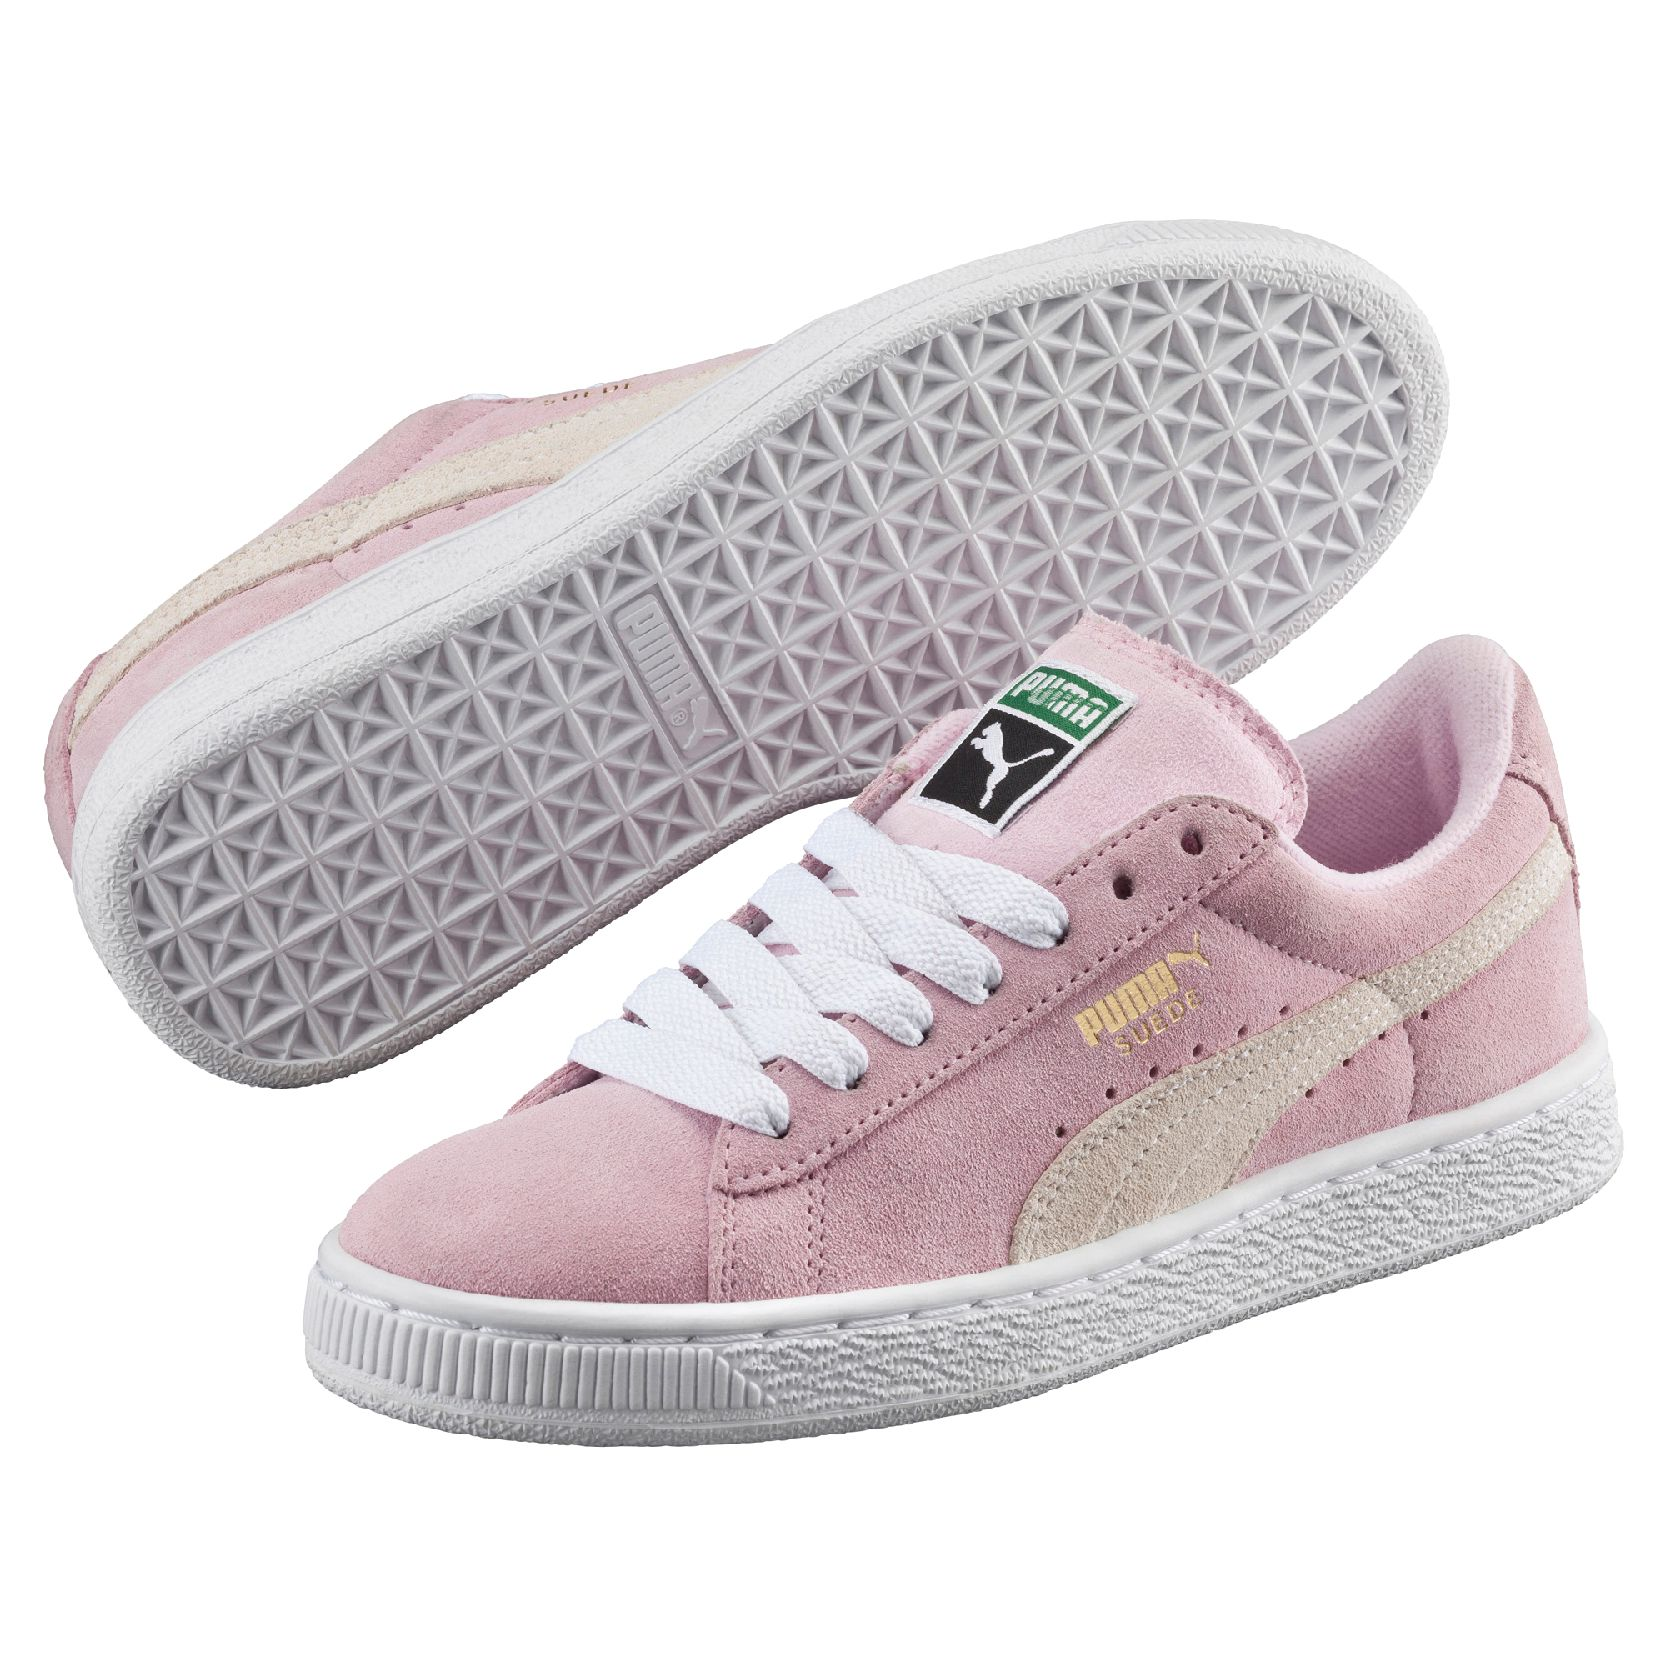 Baskets Puma Suede Rose Clair Classic